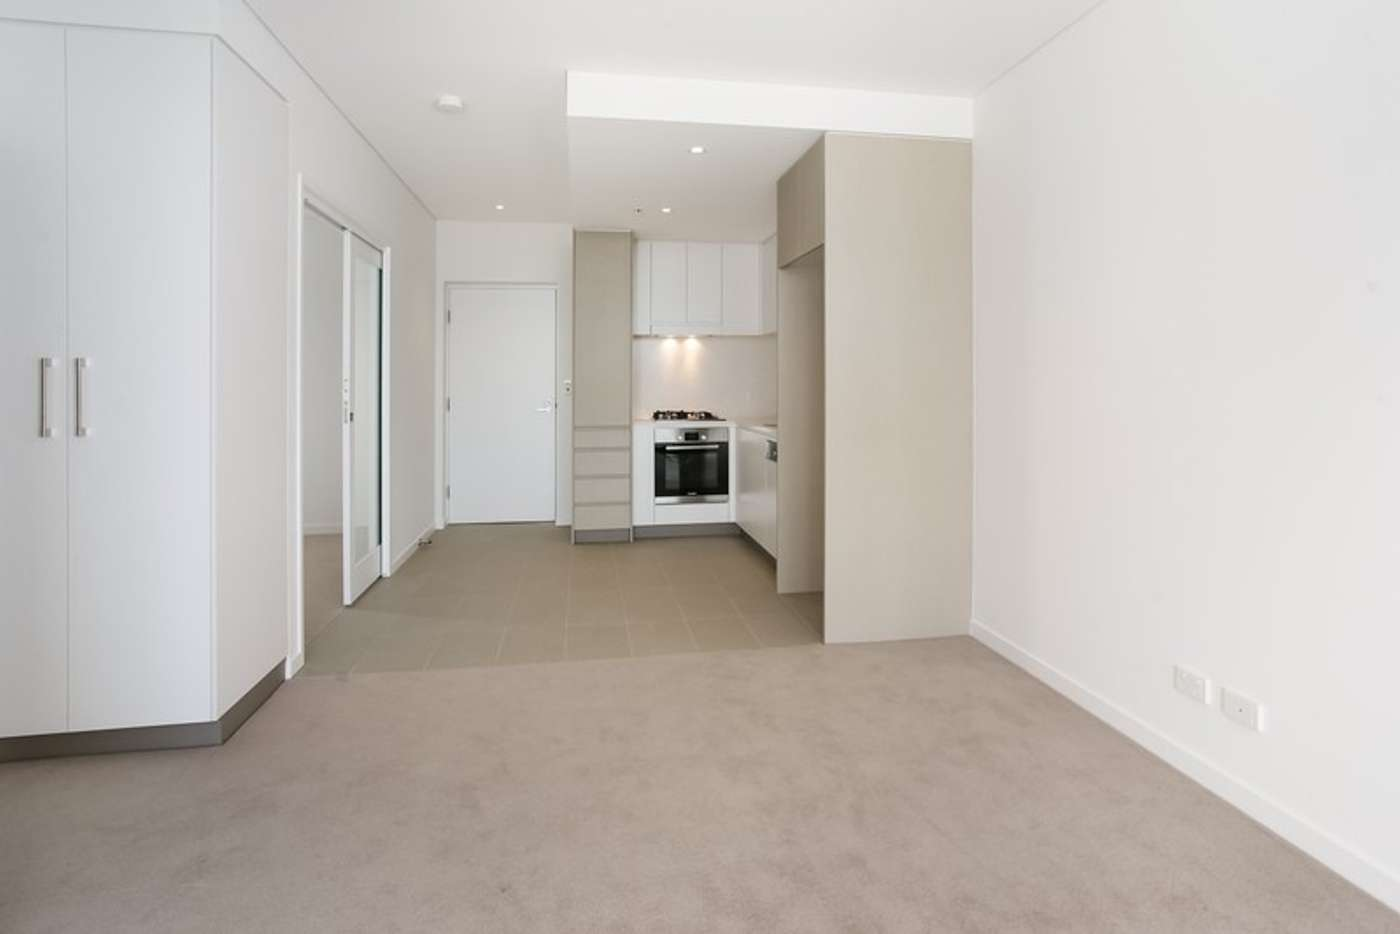 Main view of Homely apartment listing, 10216/320 MacArthur Ave, Hamilton QLD 4007